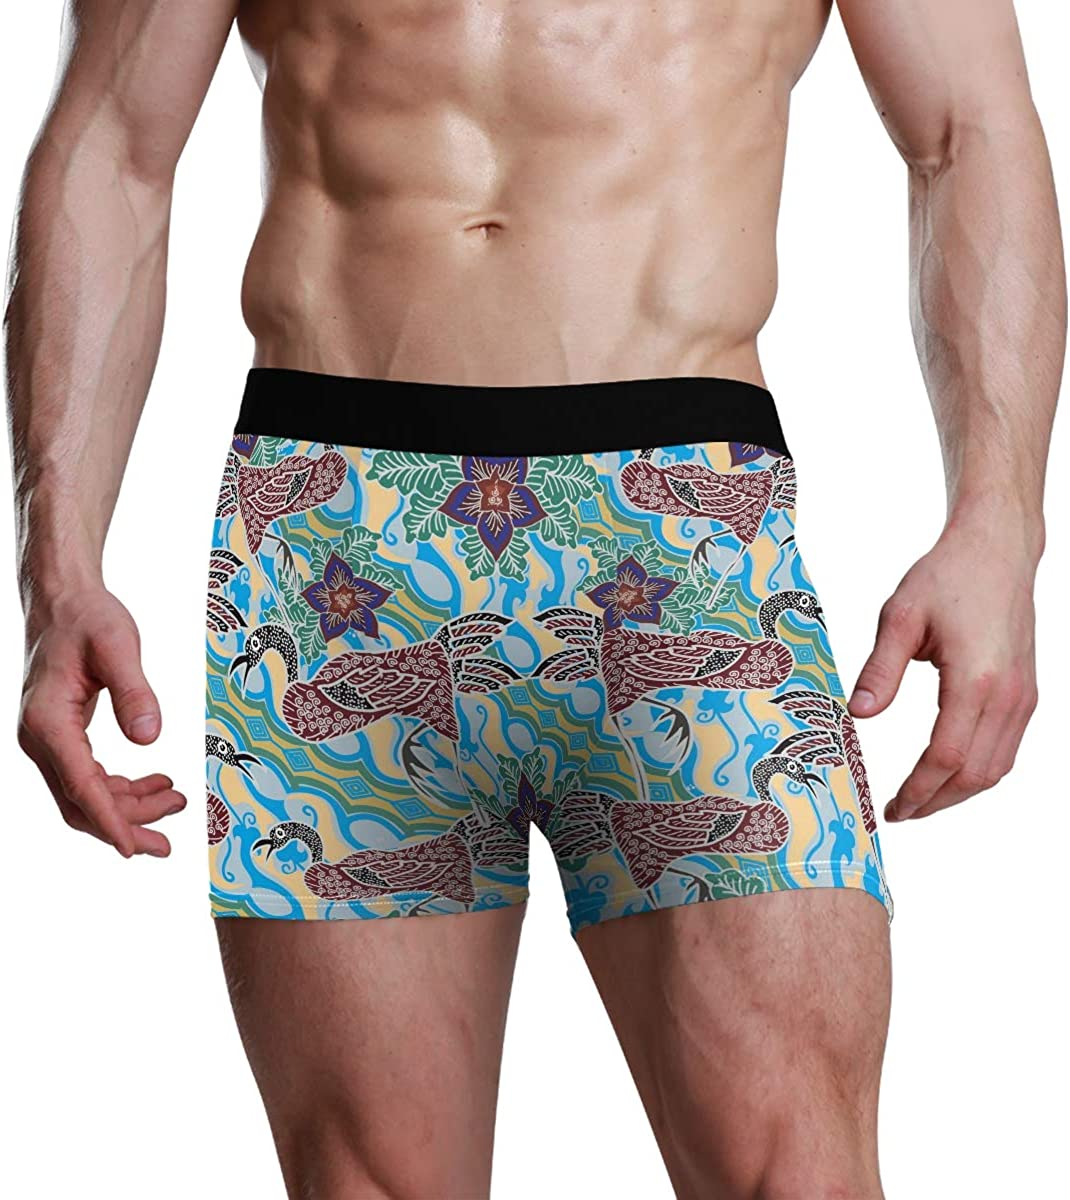 Mens Boxer Briefs Abstract Animal Peacock Flower Jaw-Dropping Low Rise Trunks Underwear Breathable Bikini Boys